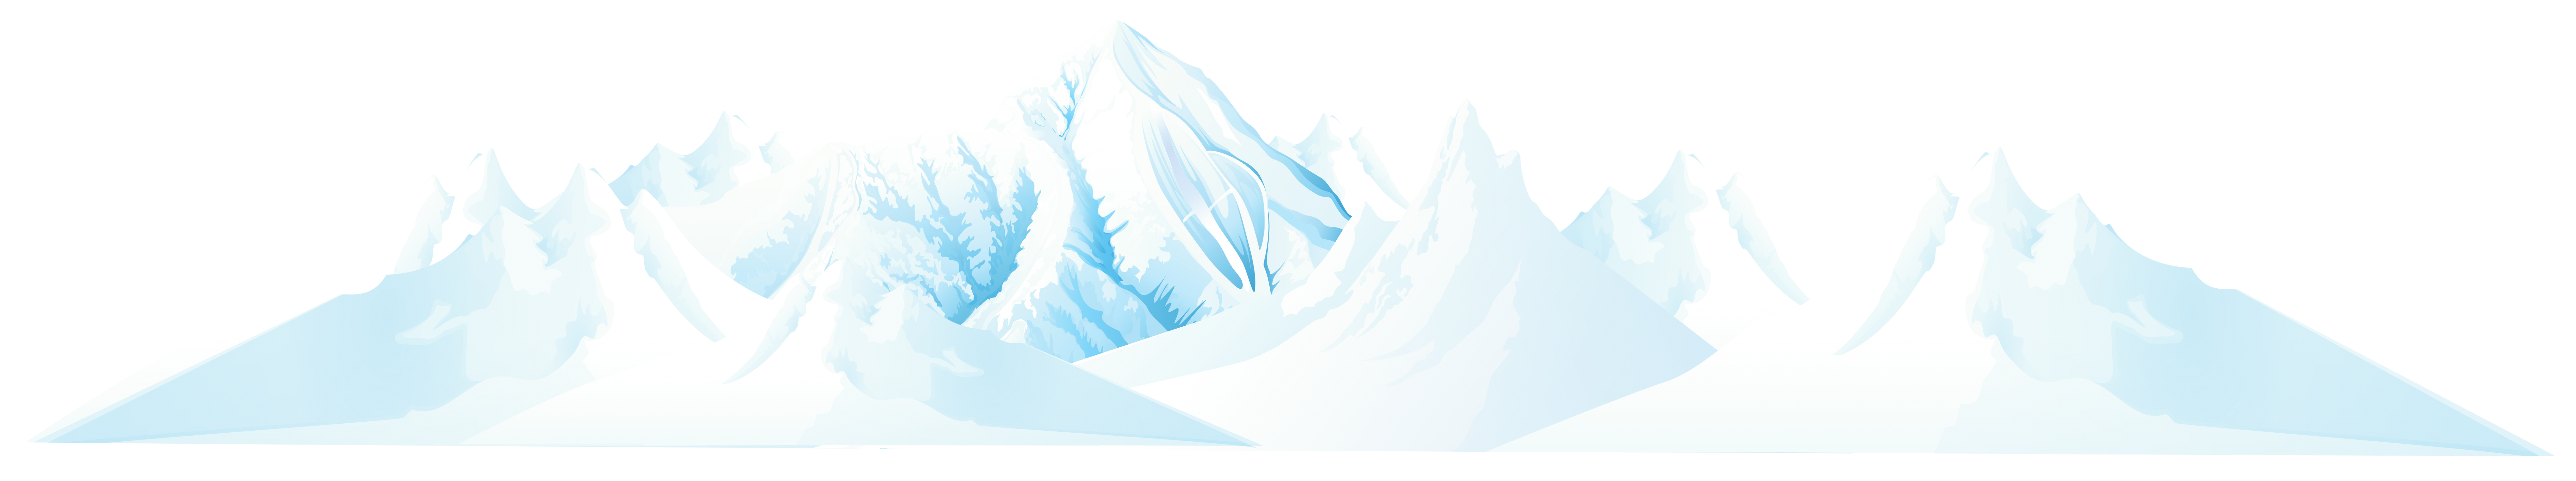 Iceberg clipart snow mountain. Winter png clip art